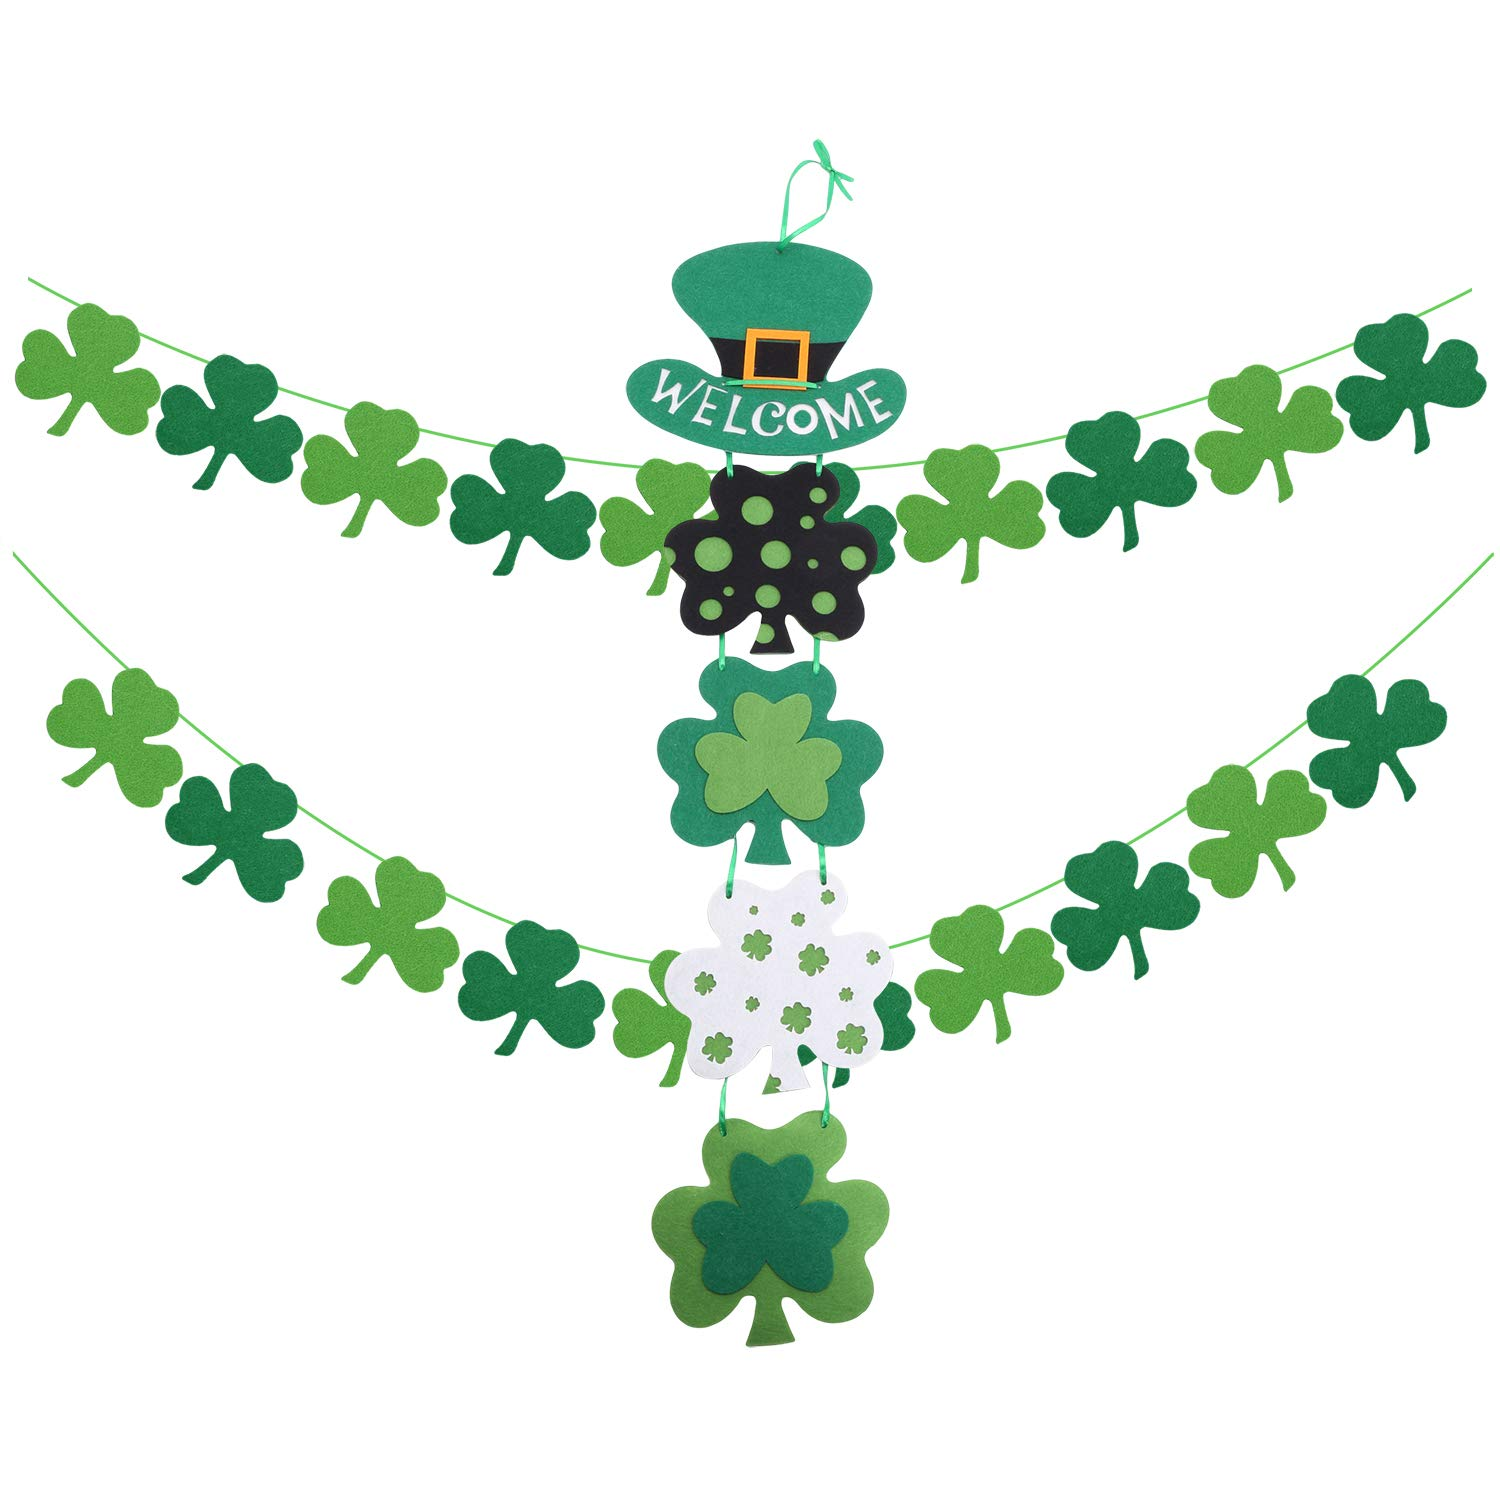 e7e2a3b235abc St. Patrick's Day Decorations Sets Themed Hanging Welcome Sign and 2  Strings of Felt Shamrock Clover Garland Banner- St. Patrick 's Day Banner  Decor - ...